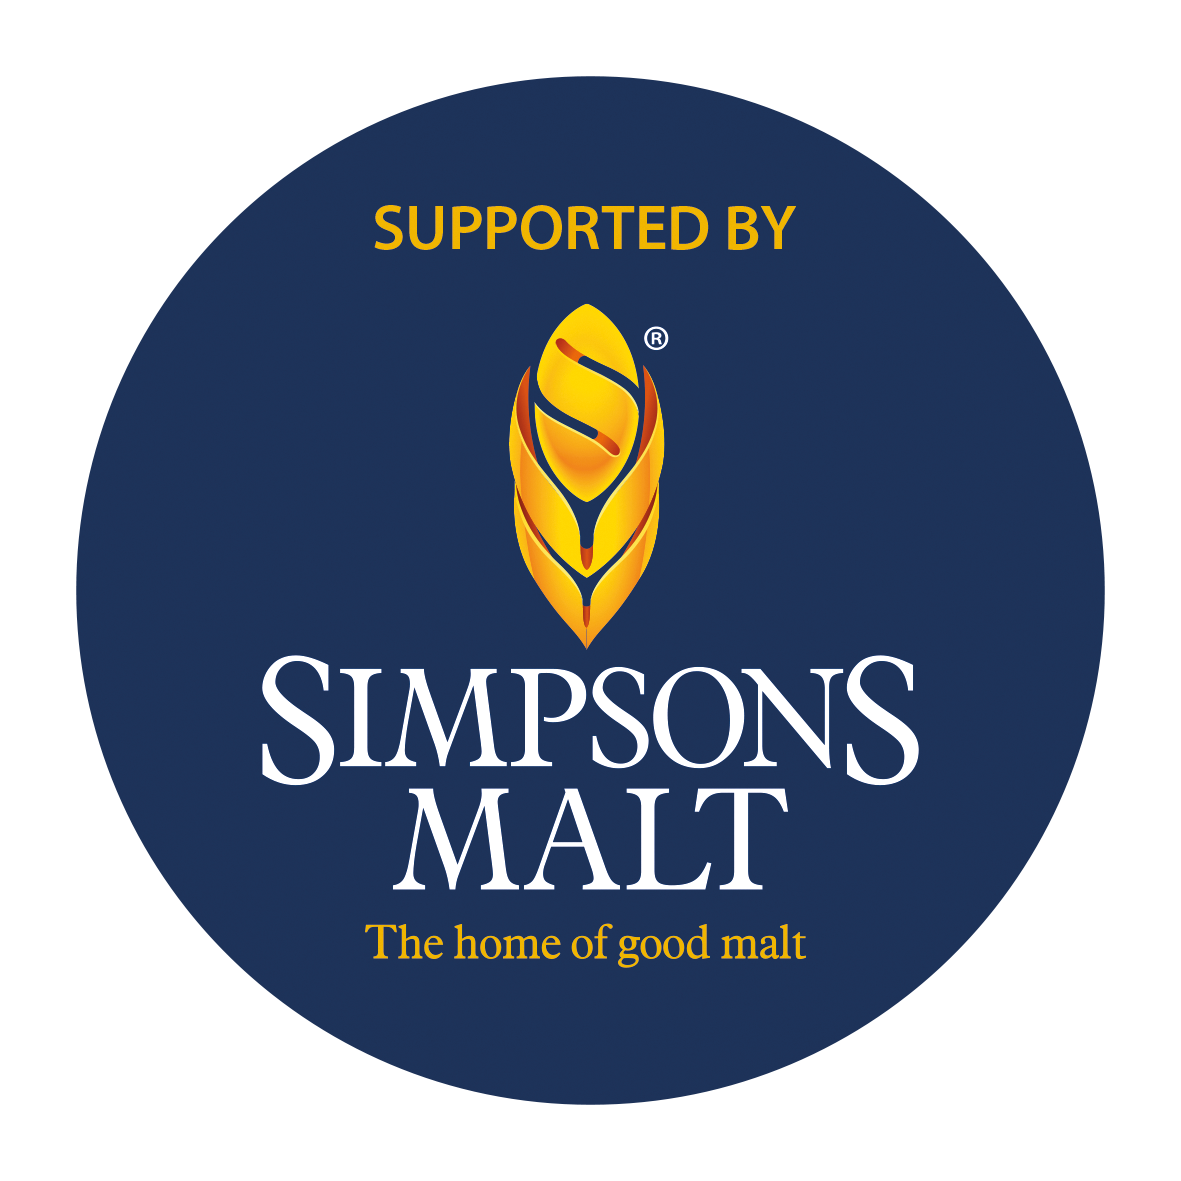 https://www.berwickfoodandbeerfestival.co.uk/wp-content/uploads/2019/05/Supported-by-Simpsons-Malt-roundel.png